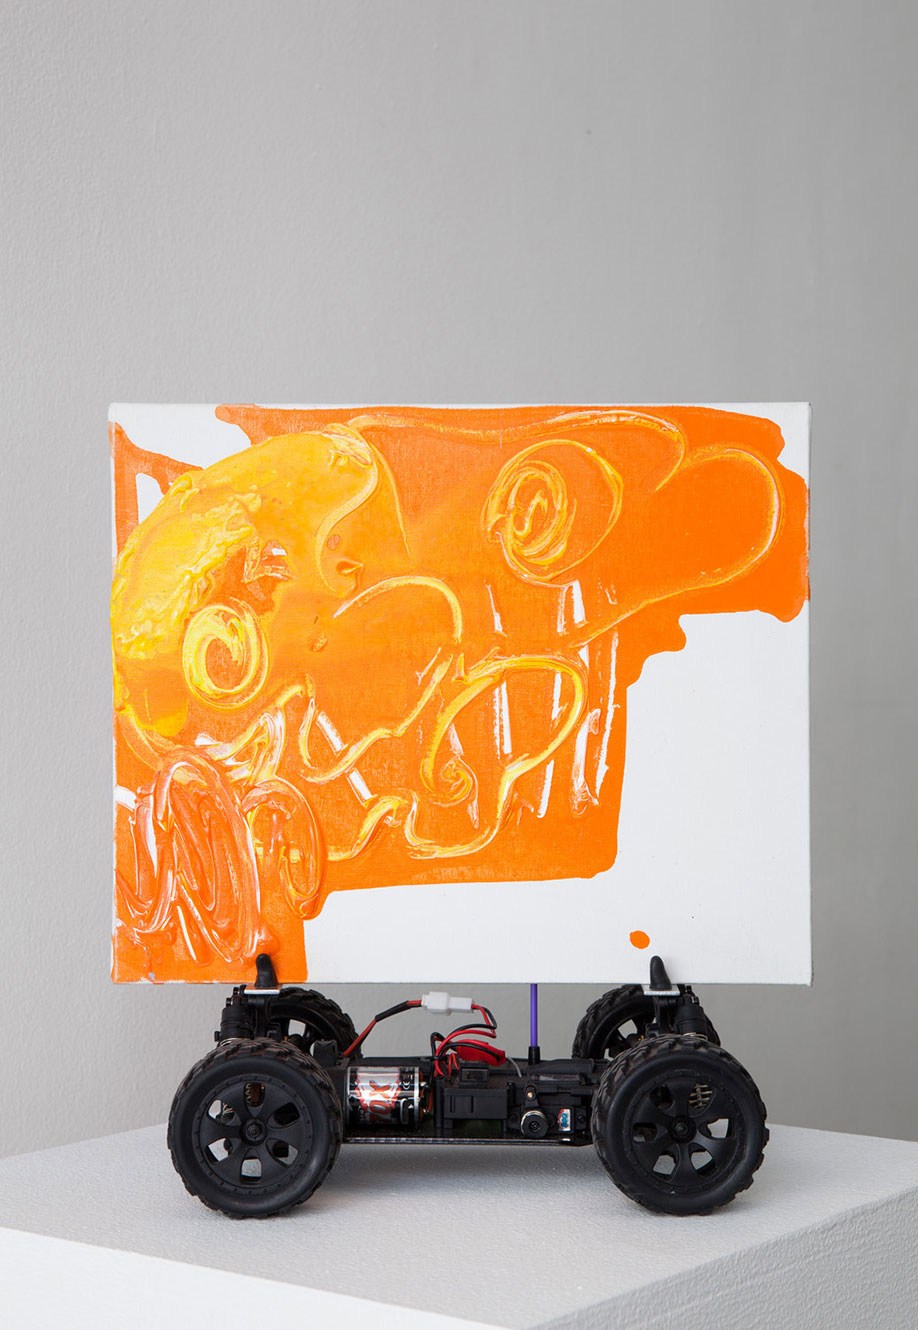 <b>Title: </b>Remote Control Painting<br /><b>Year: </b>2013<br /><b>Medium: </b>Remote control car, painting<br /><b>Size: </b>34 x 30 x 19 cm